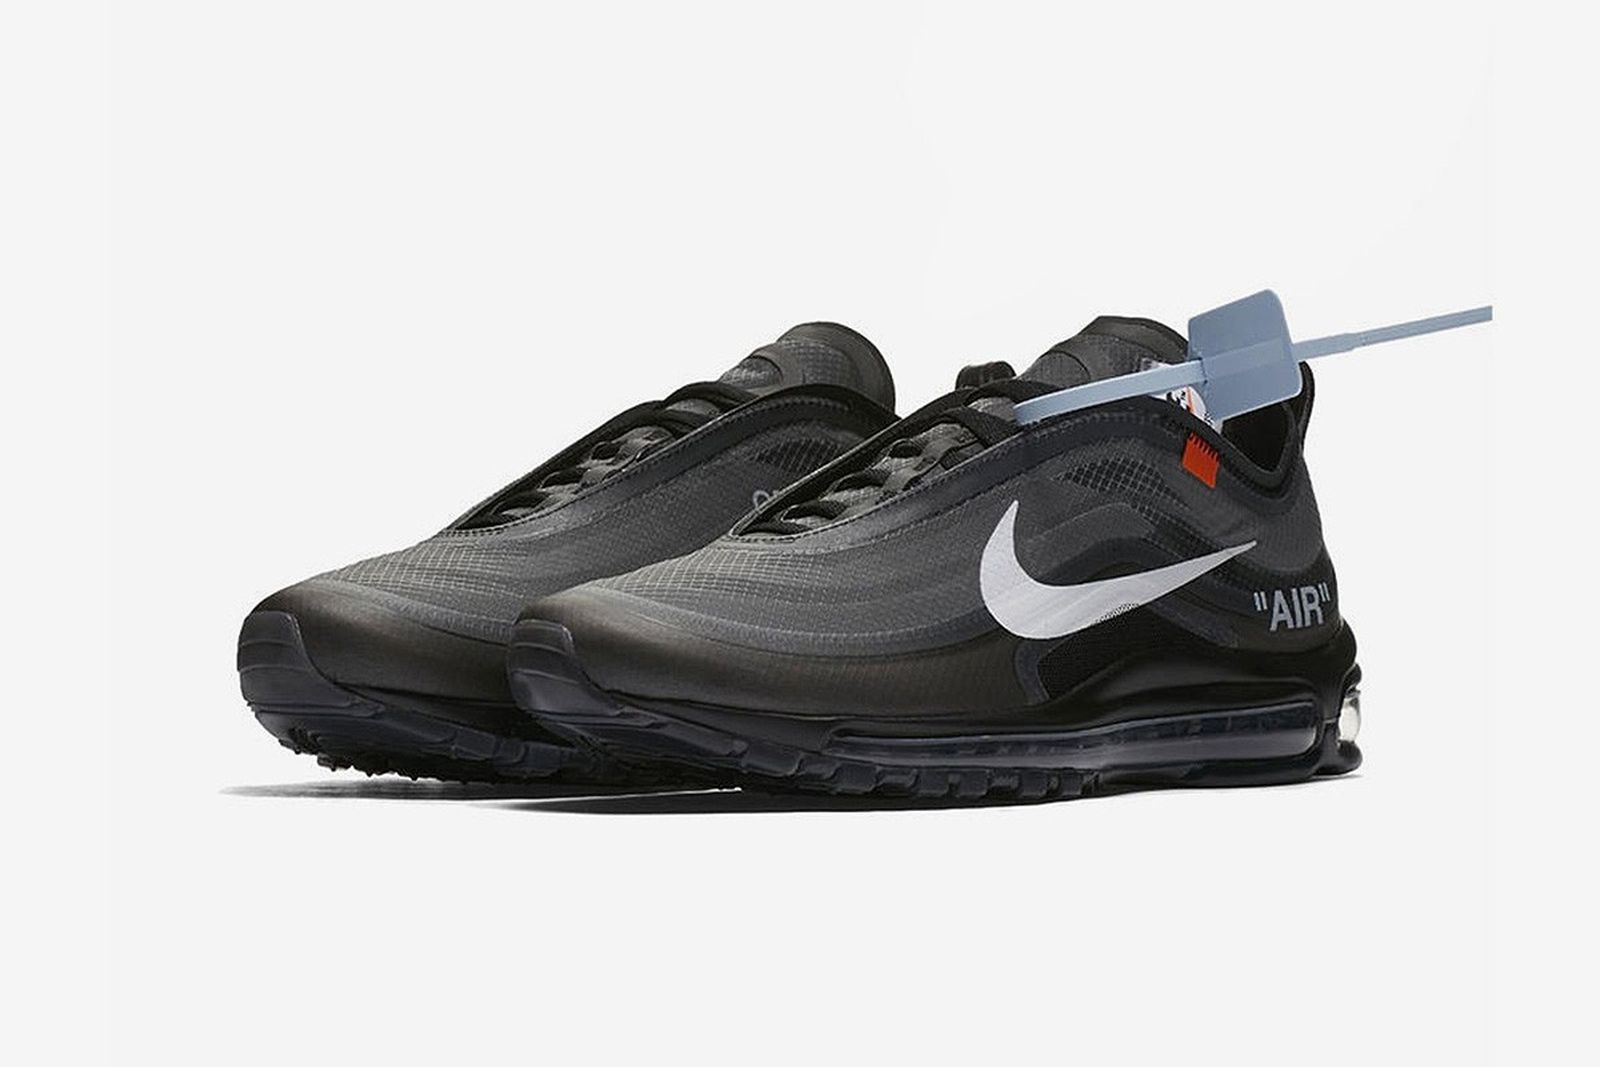 off-white-nike-air-max-97-black-release-date-price-02